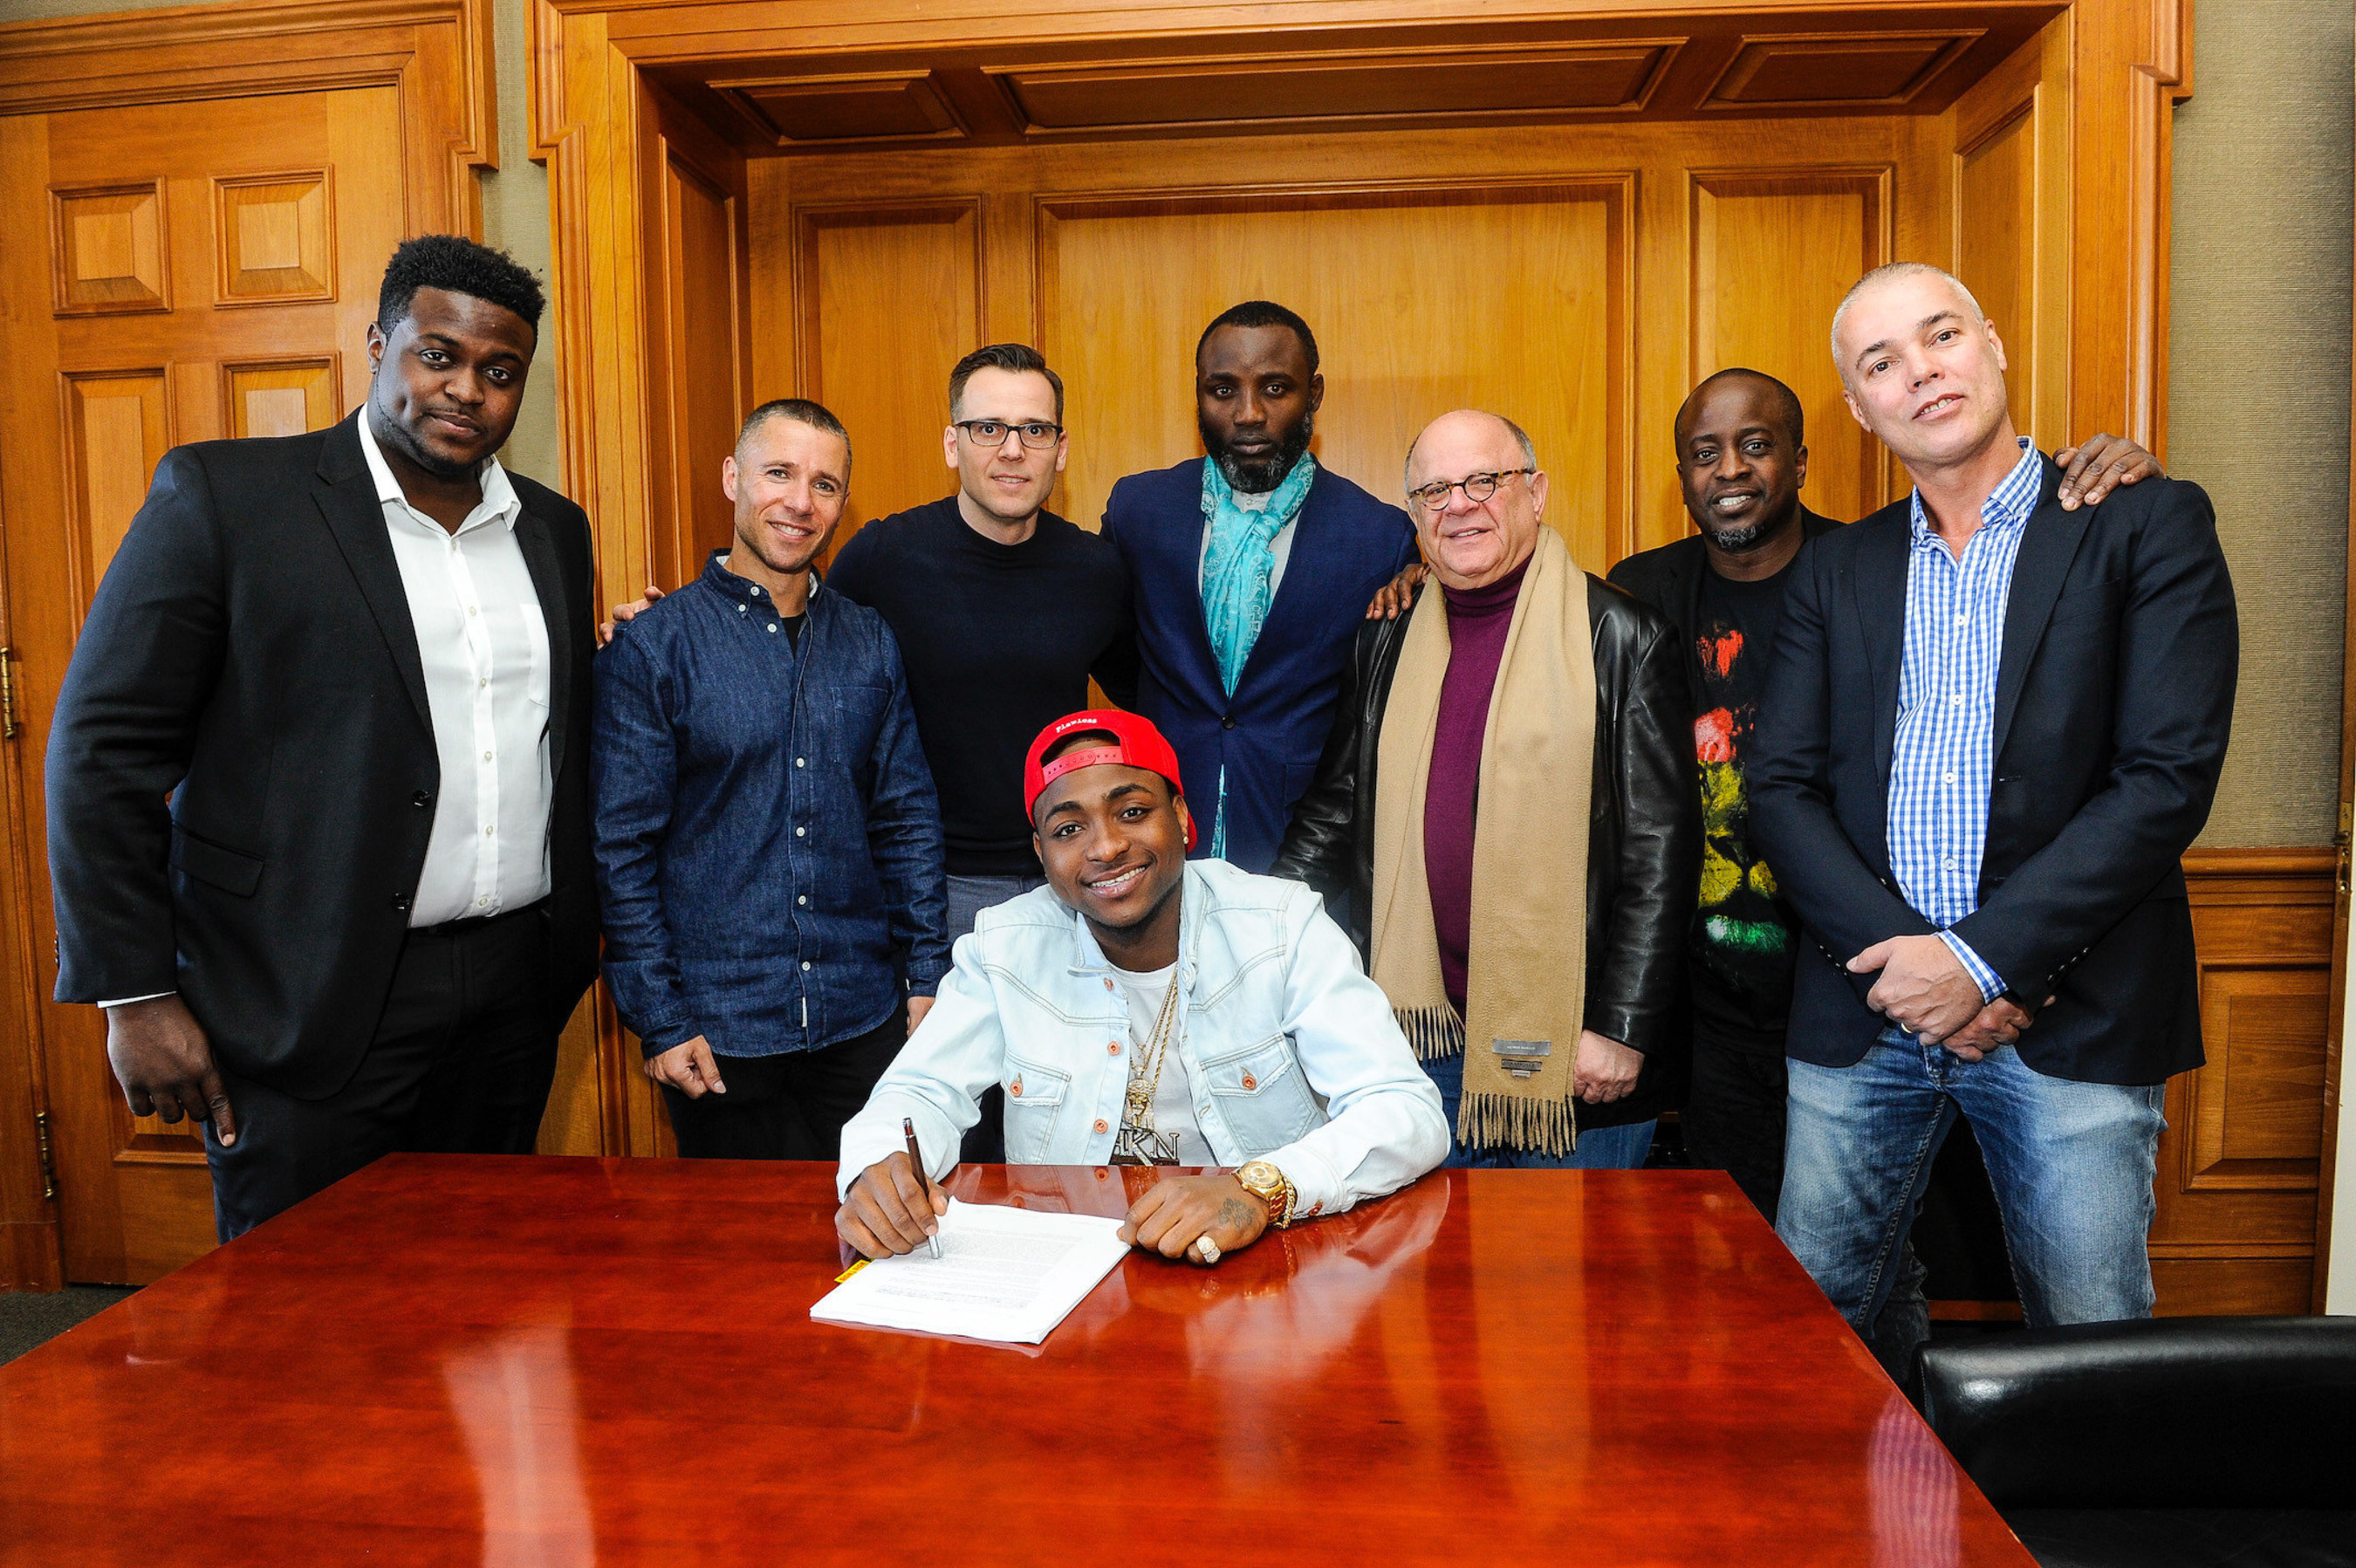 Sony Music Entertainment Sign Nigerian Musician Davido - Pictured (L to R): Adewale Adeleke, Chairman, HKN Records; Adam Granite, President, Northern & Eastern Europe and Africa, Sony Music International; Dusko Justic, Vice President, International Marketing, Sony Music International; Kamal Ajiboye, Manager for Davido; Joel Katz, Chairman Media & Entertainment, Greenberg Traurig; Efe Ogbeni, Executive Producer / Head A&R, Regime Music Societe; Sean Watson, Managing Director, Sony Music Africa...